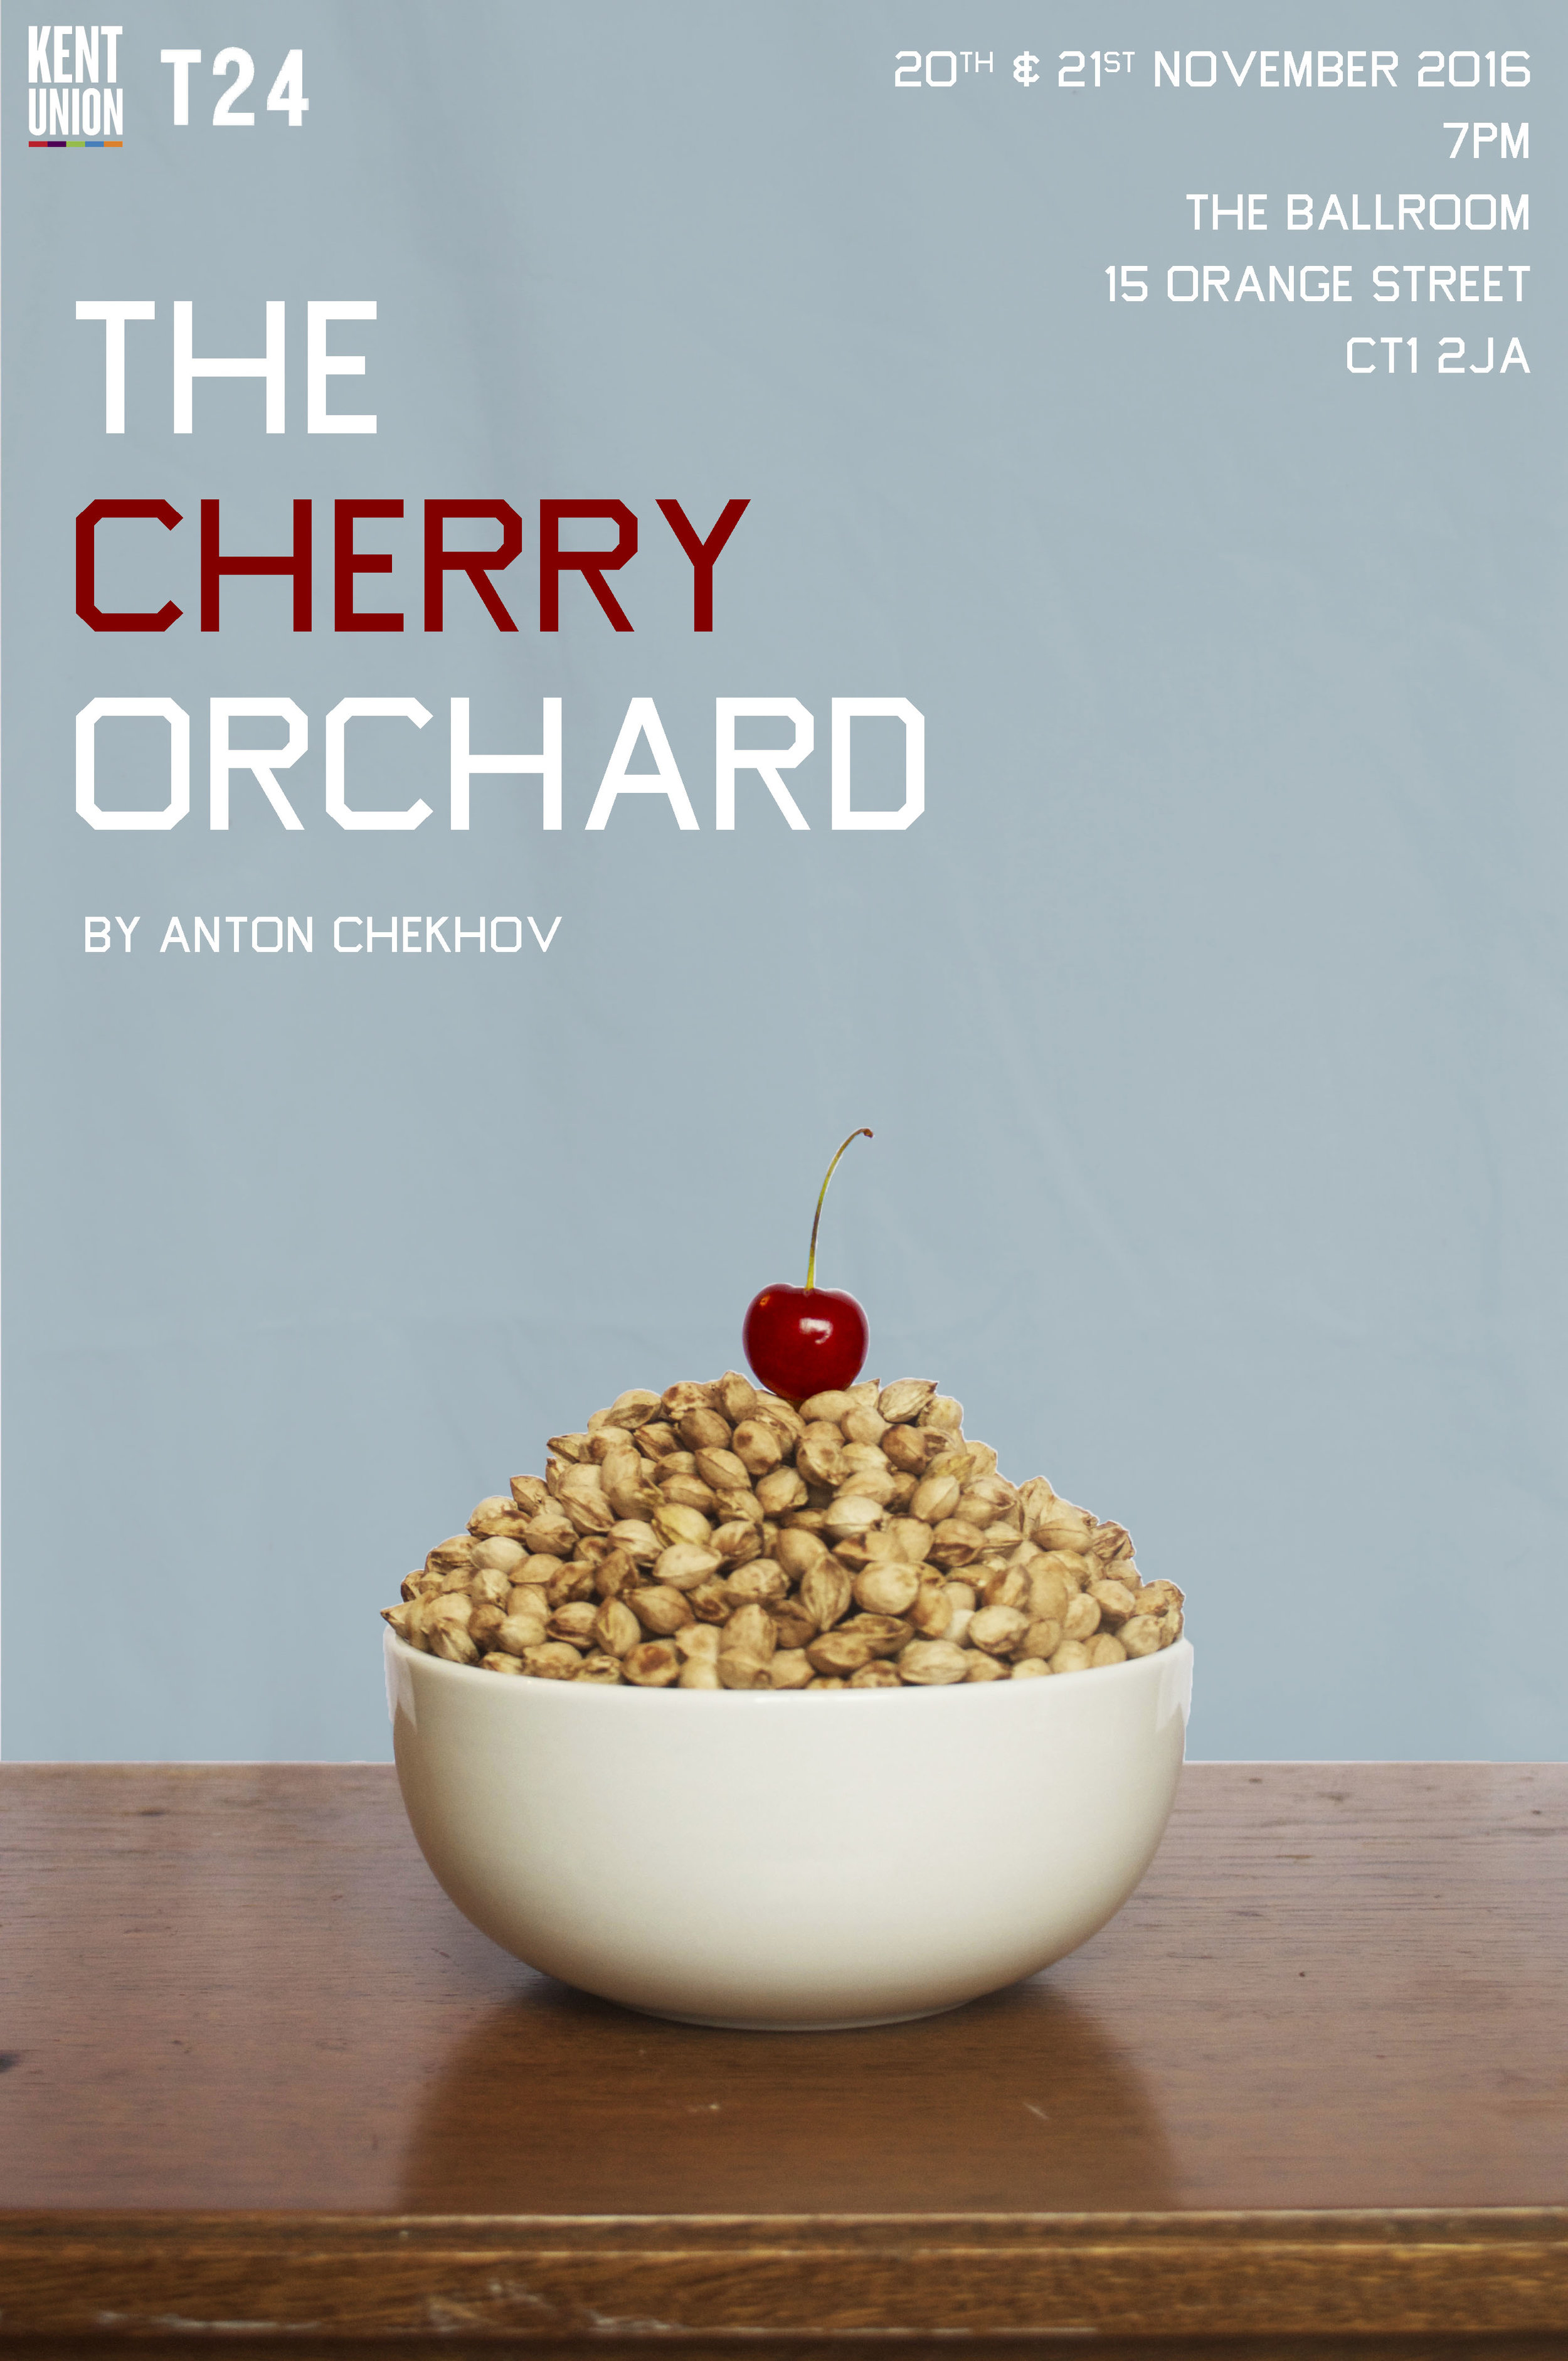 The poster! Fun fact: There are 345 cherry pips in this picture.